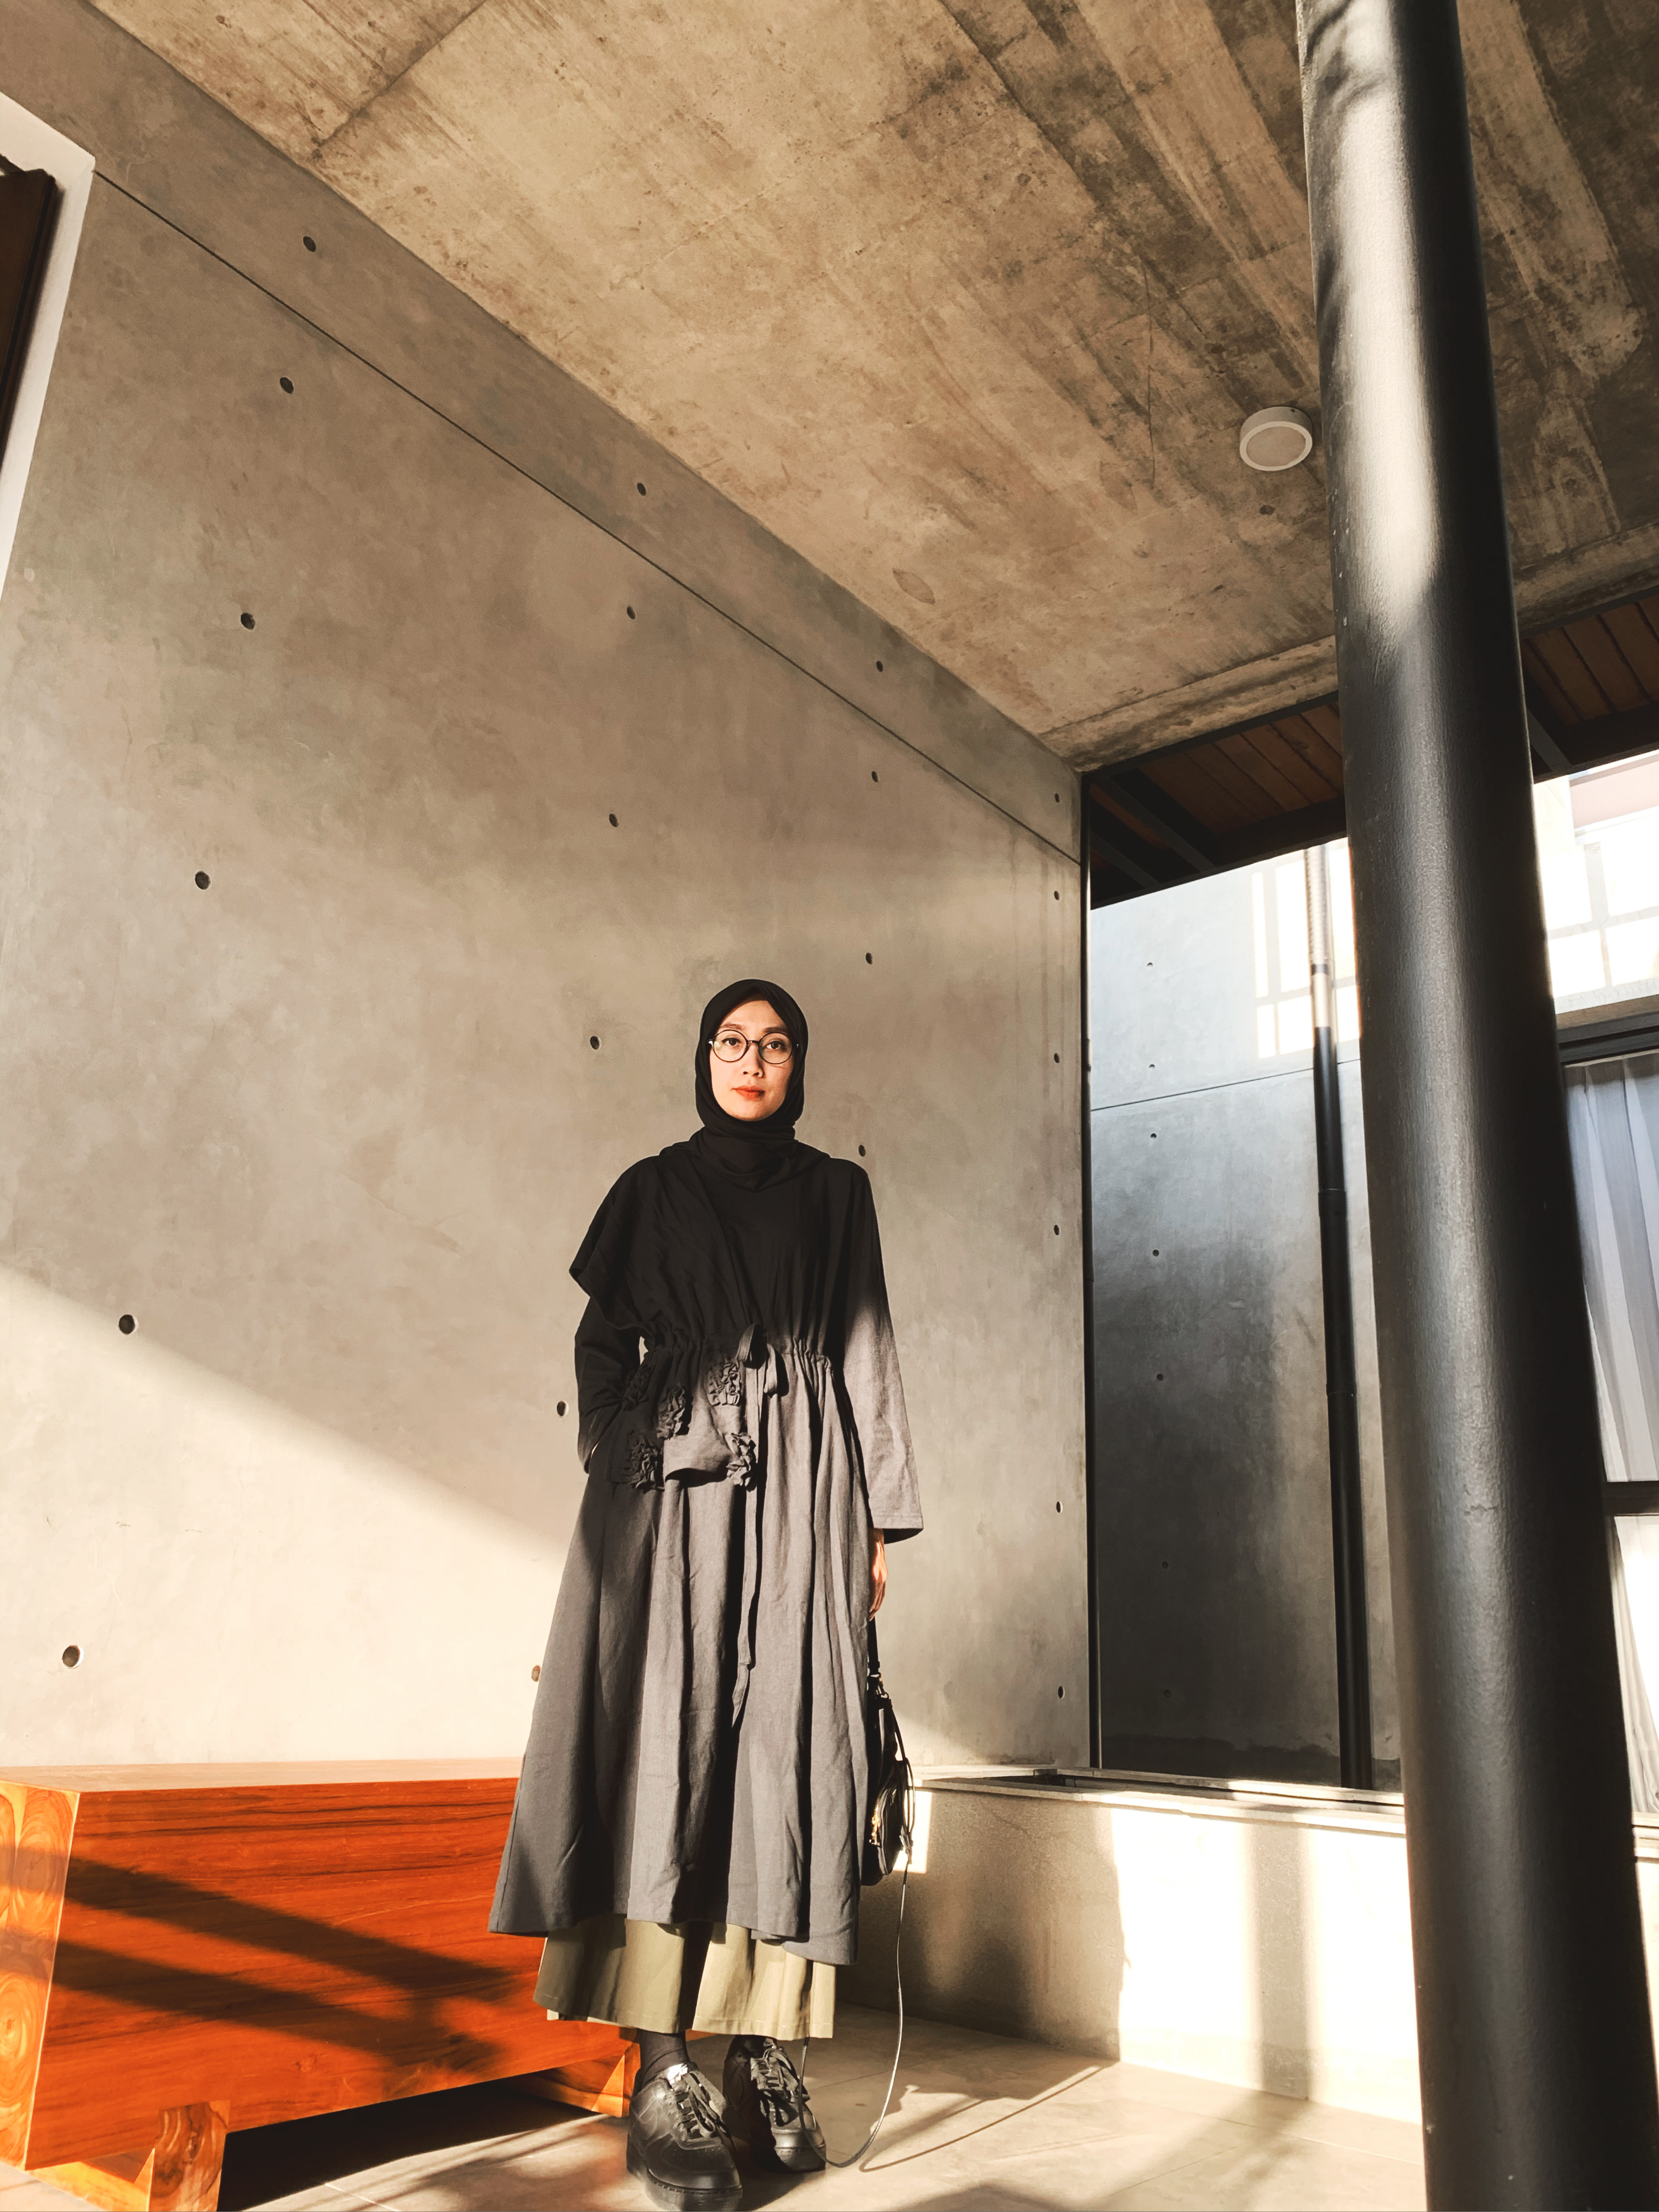 Our Creative Director Renni Andriani in #rashawllook image